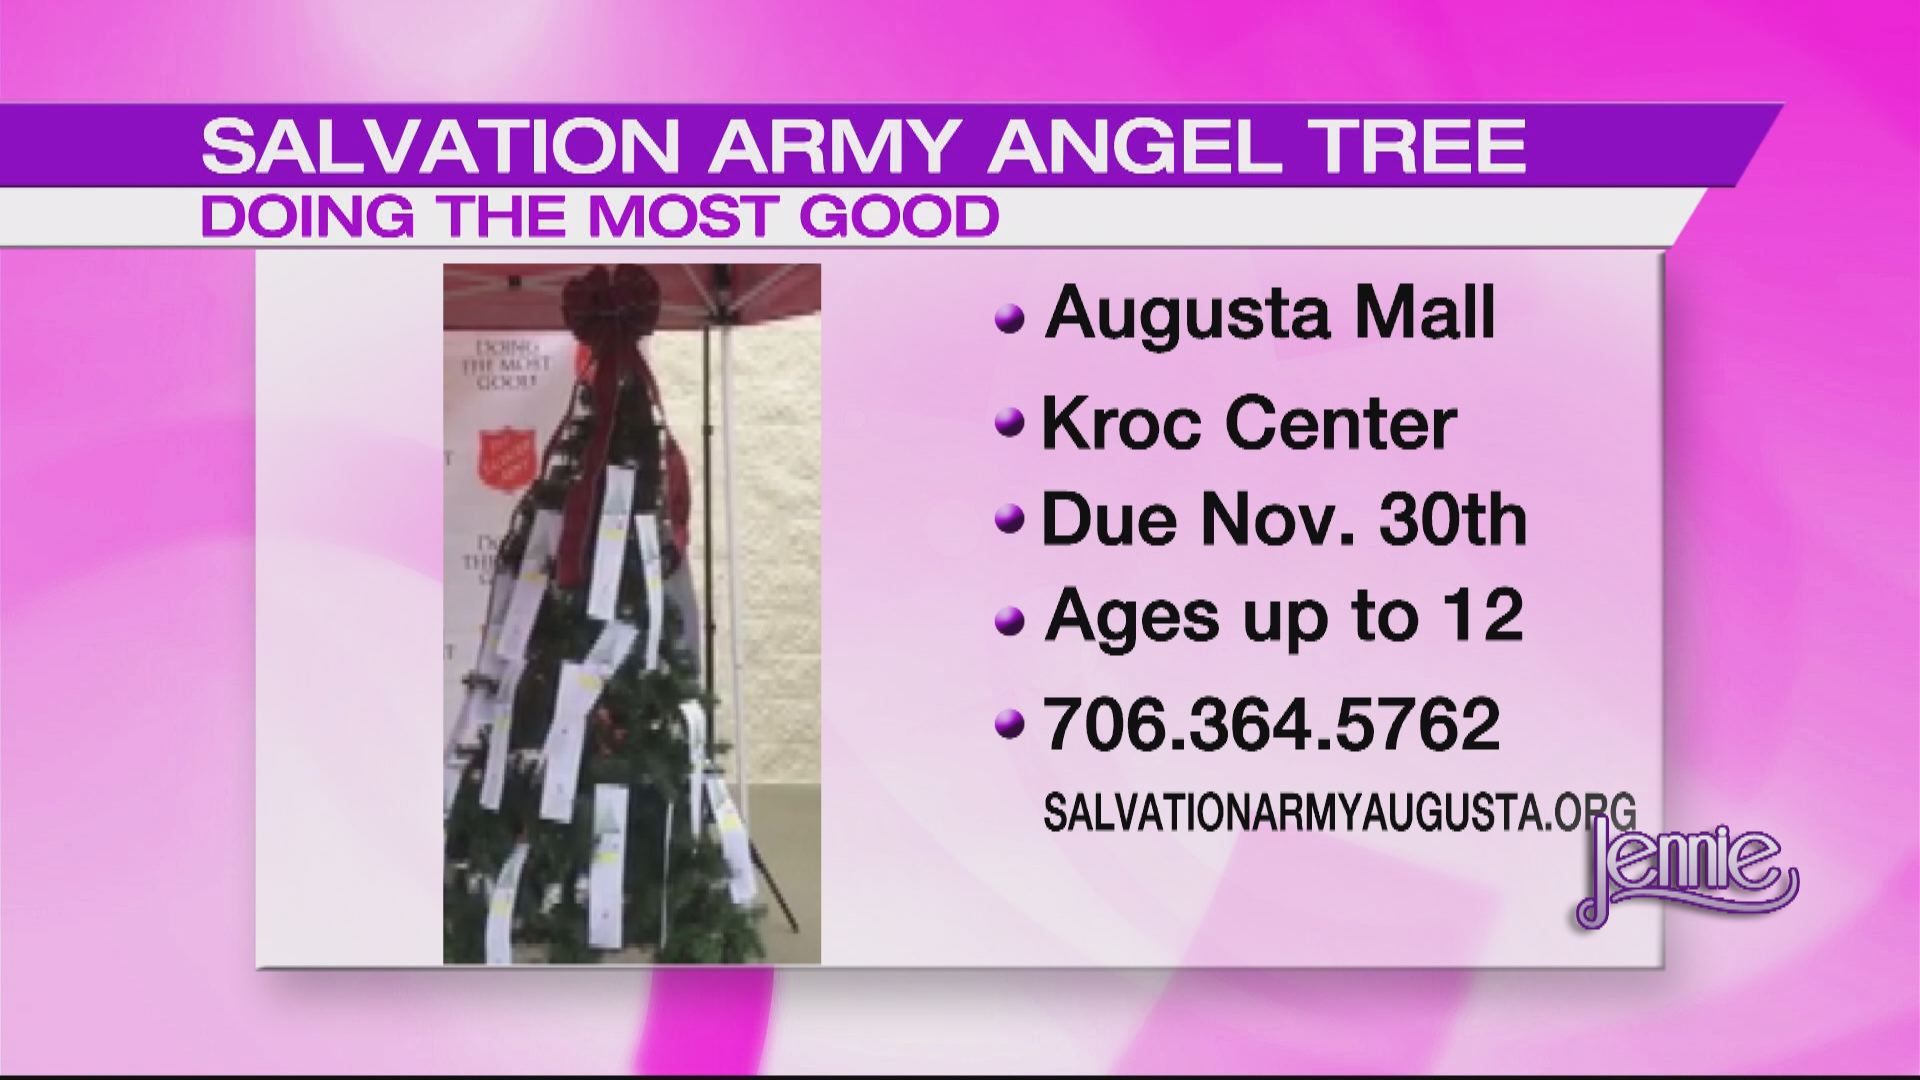 Angel tREE produced_1542760765907.jpg.jpg